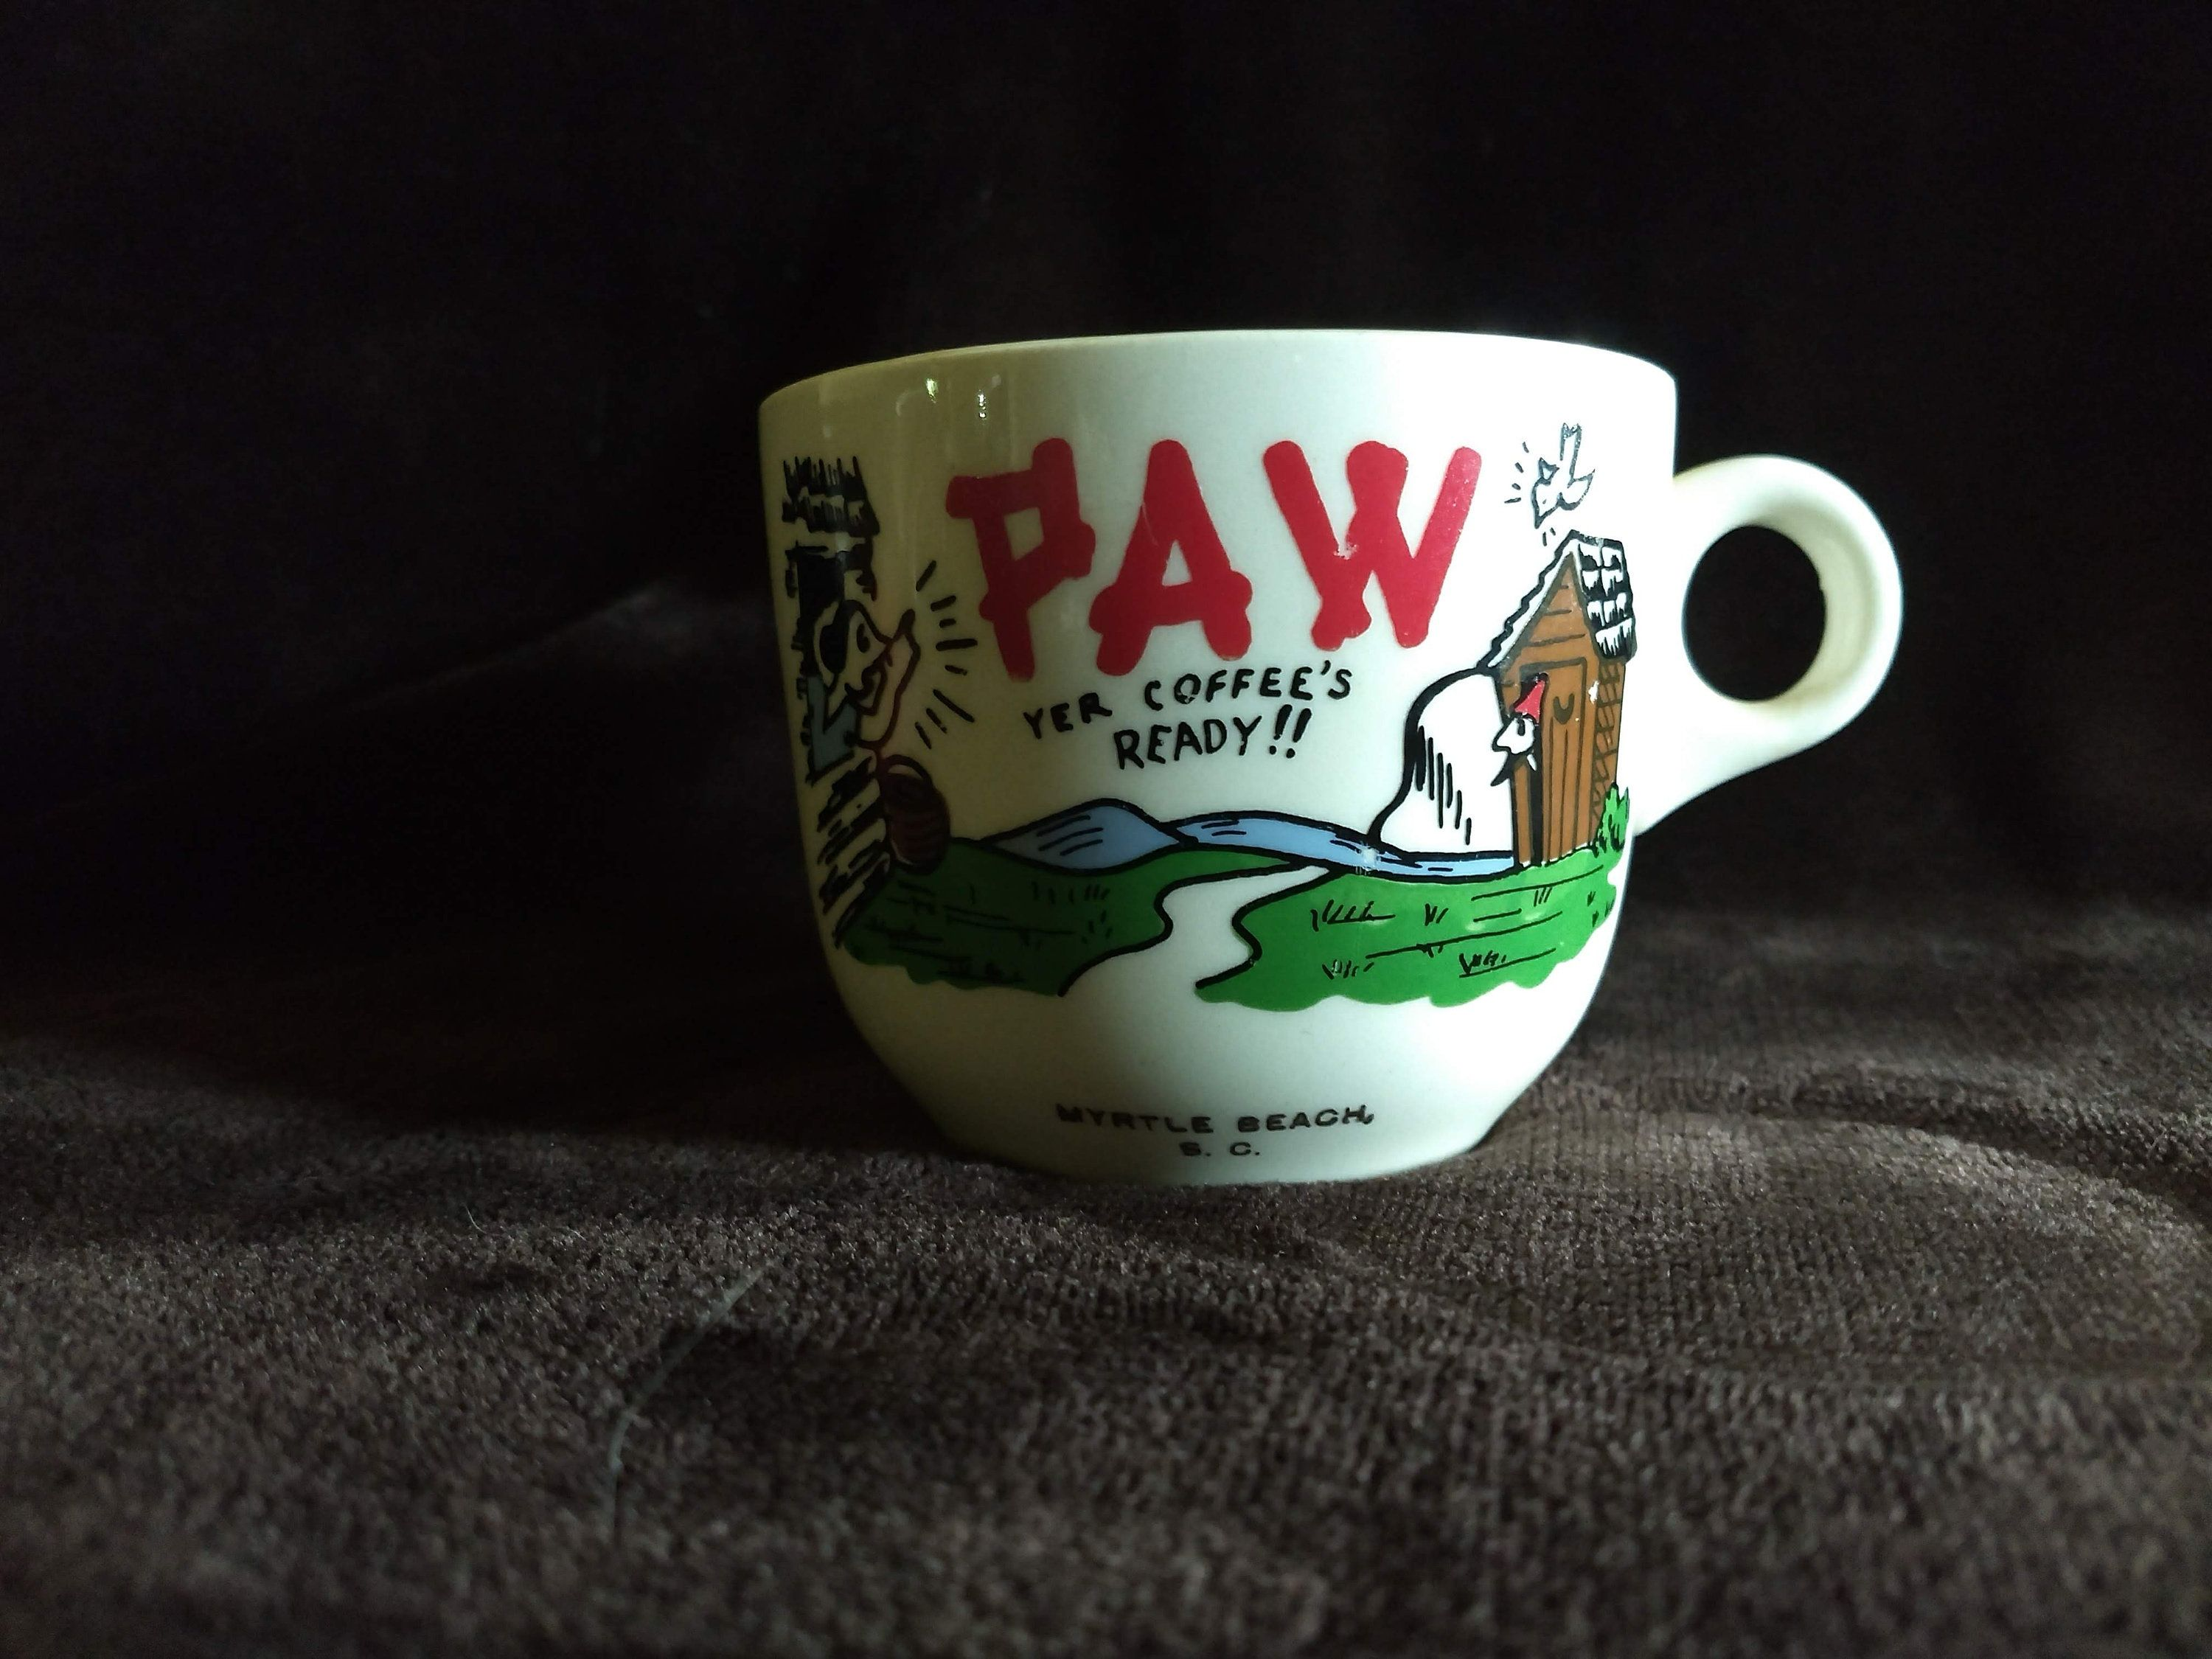 Excited To Share The Latest Addition To My Etsy Shop Paw Yer Coffee S Ready Myrtle Beach Sc Mug Https Etsy Me 2jiafc9 Housewares My Coffee Mugs My Glass